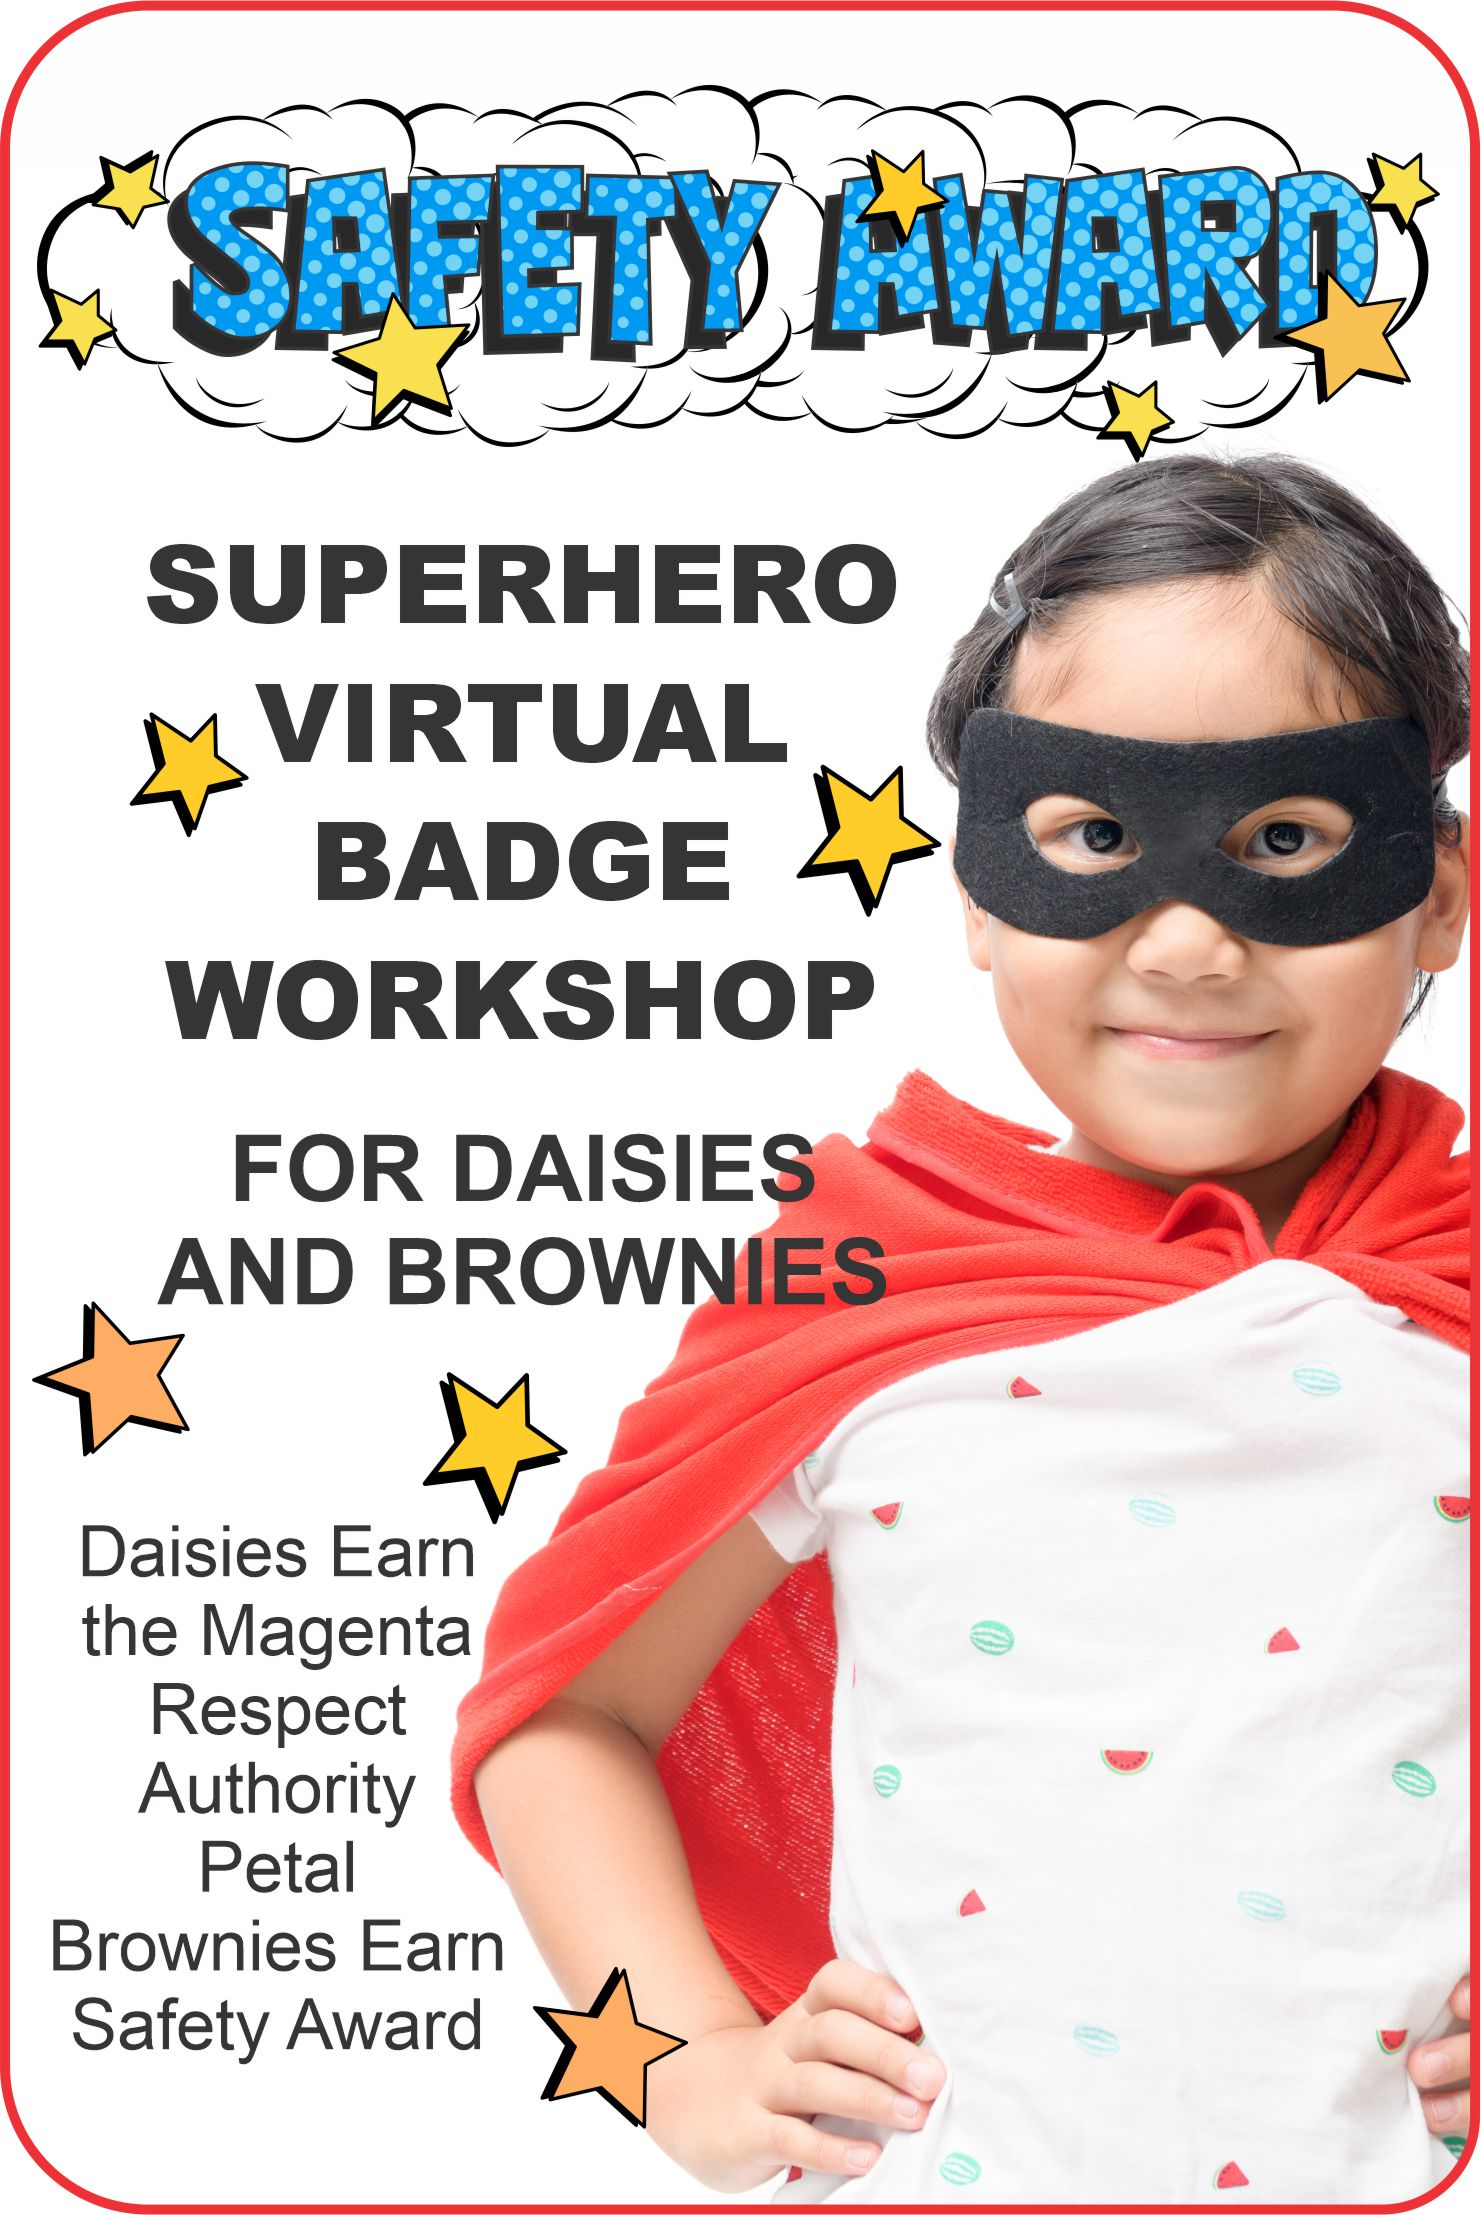 Come dressed like a superhero and join Superheroes Nichole and Justice for our Daisy and Brownie Safety Award Workshop on Zoom! #makingfriends #virtual #safetyaward #safety #virutalworkshop #onlineclass #girlscouts #daisies #brownies #superhero #girlscoutworkshop #funpatch via @gsleader411